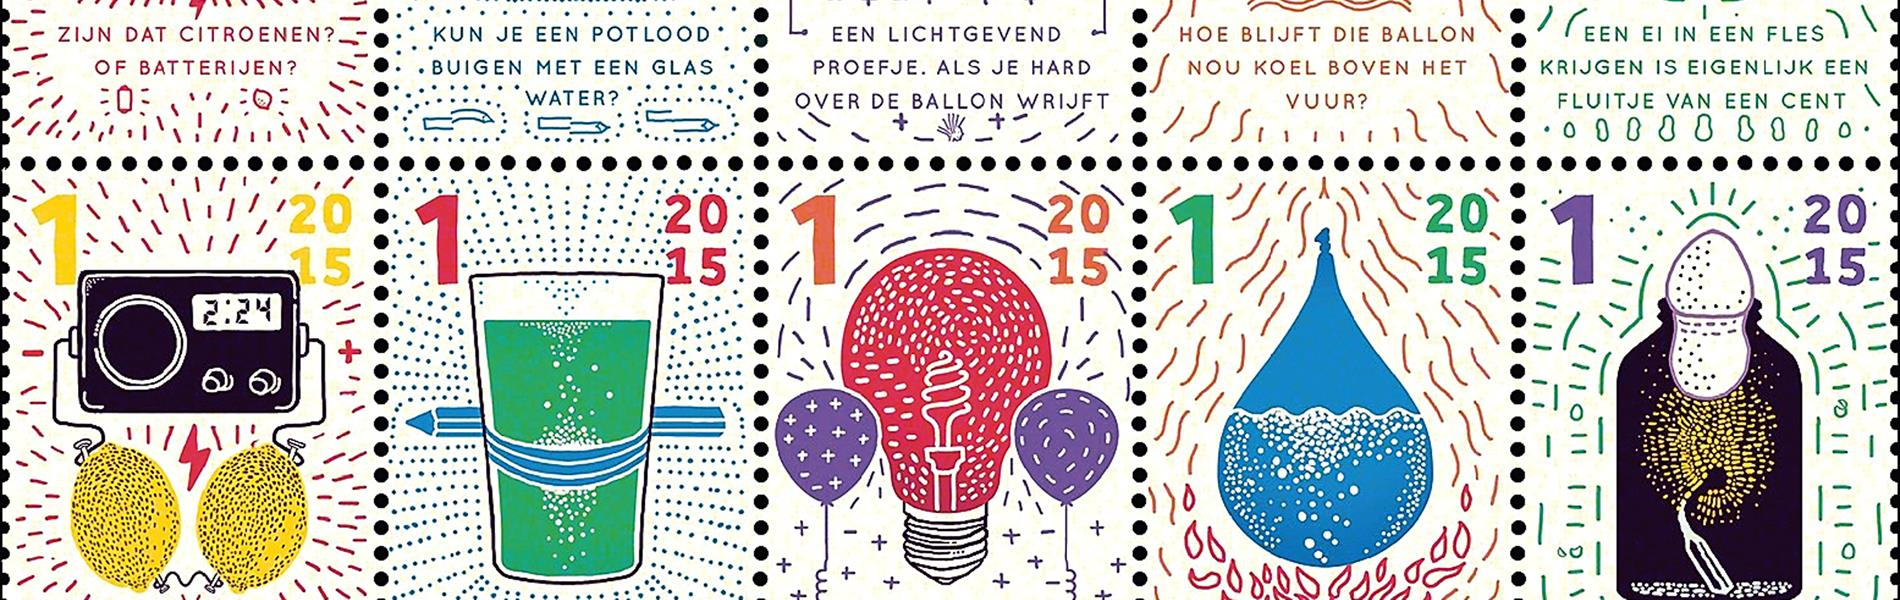 netherlands-discover-science-stamps-2015